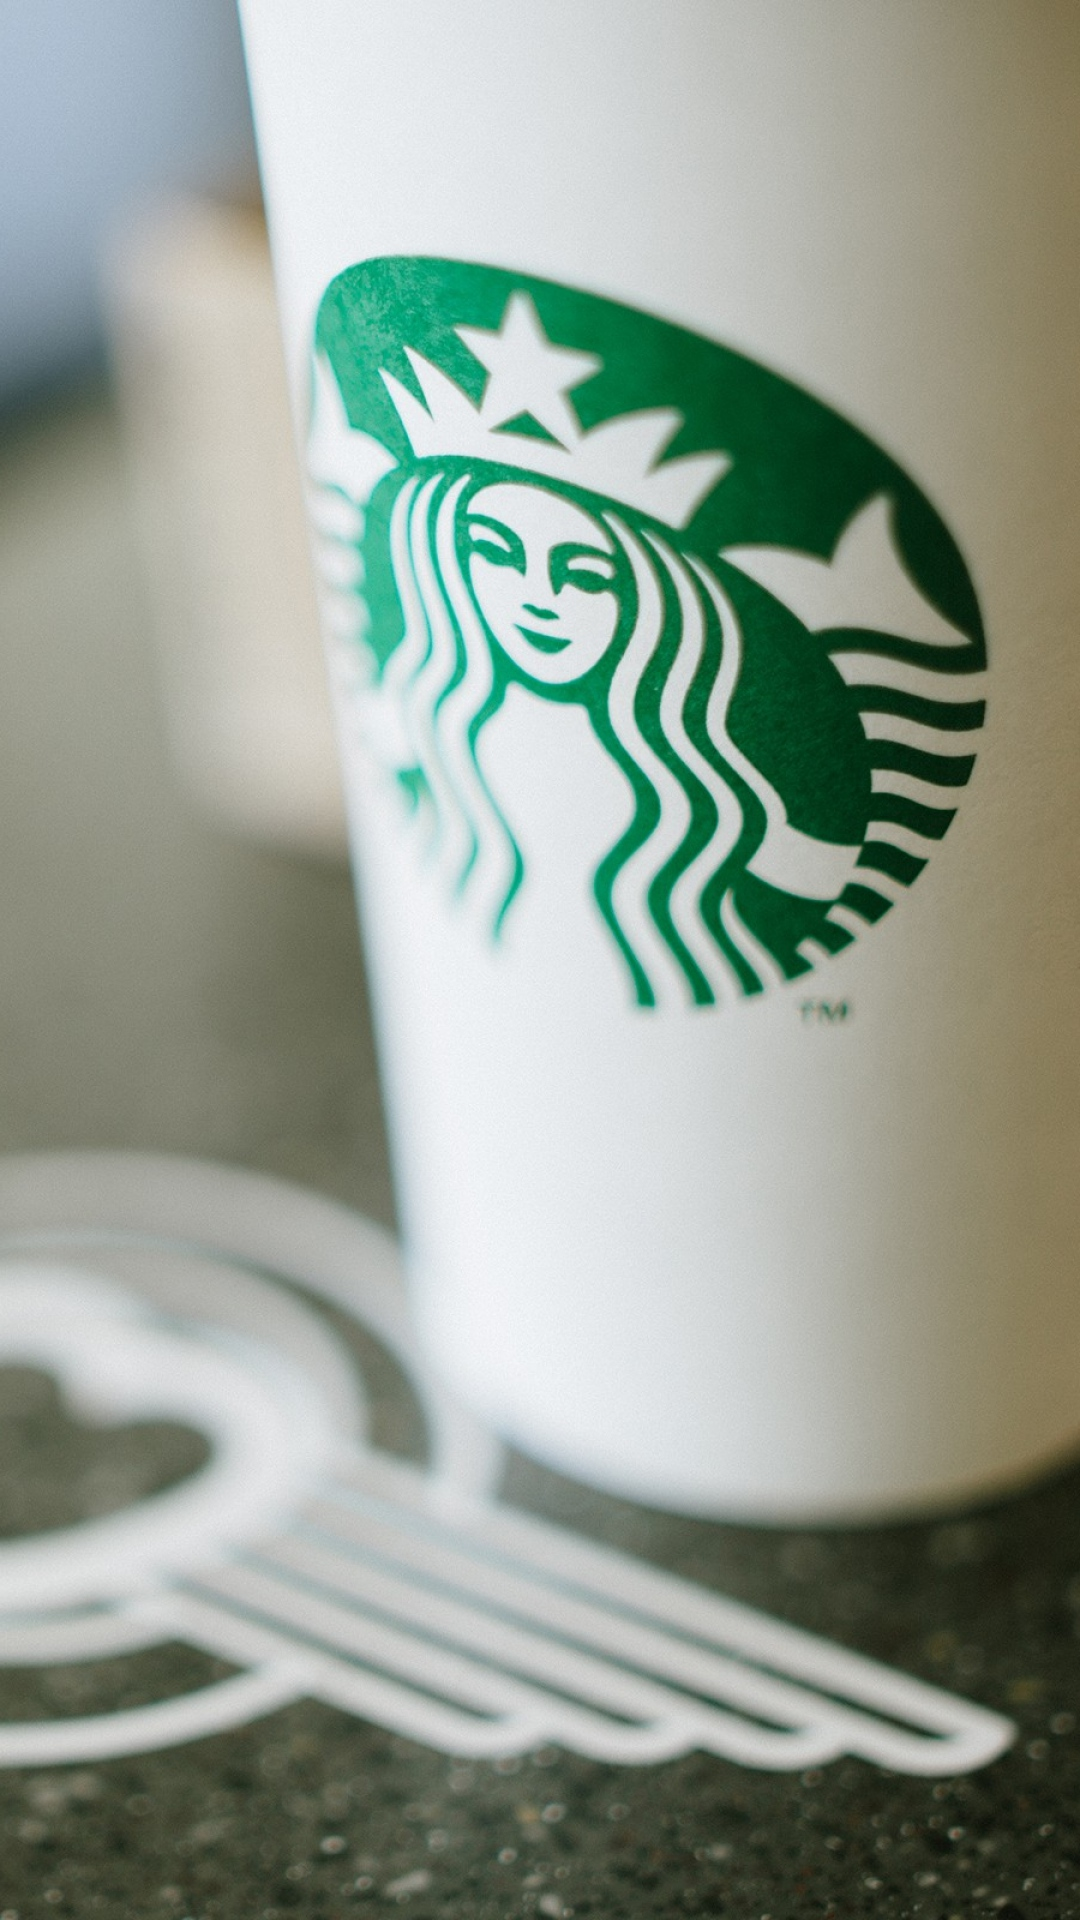 Starbucks Coffee Cup Best Htc One Wallpapers